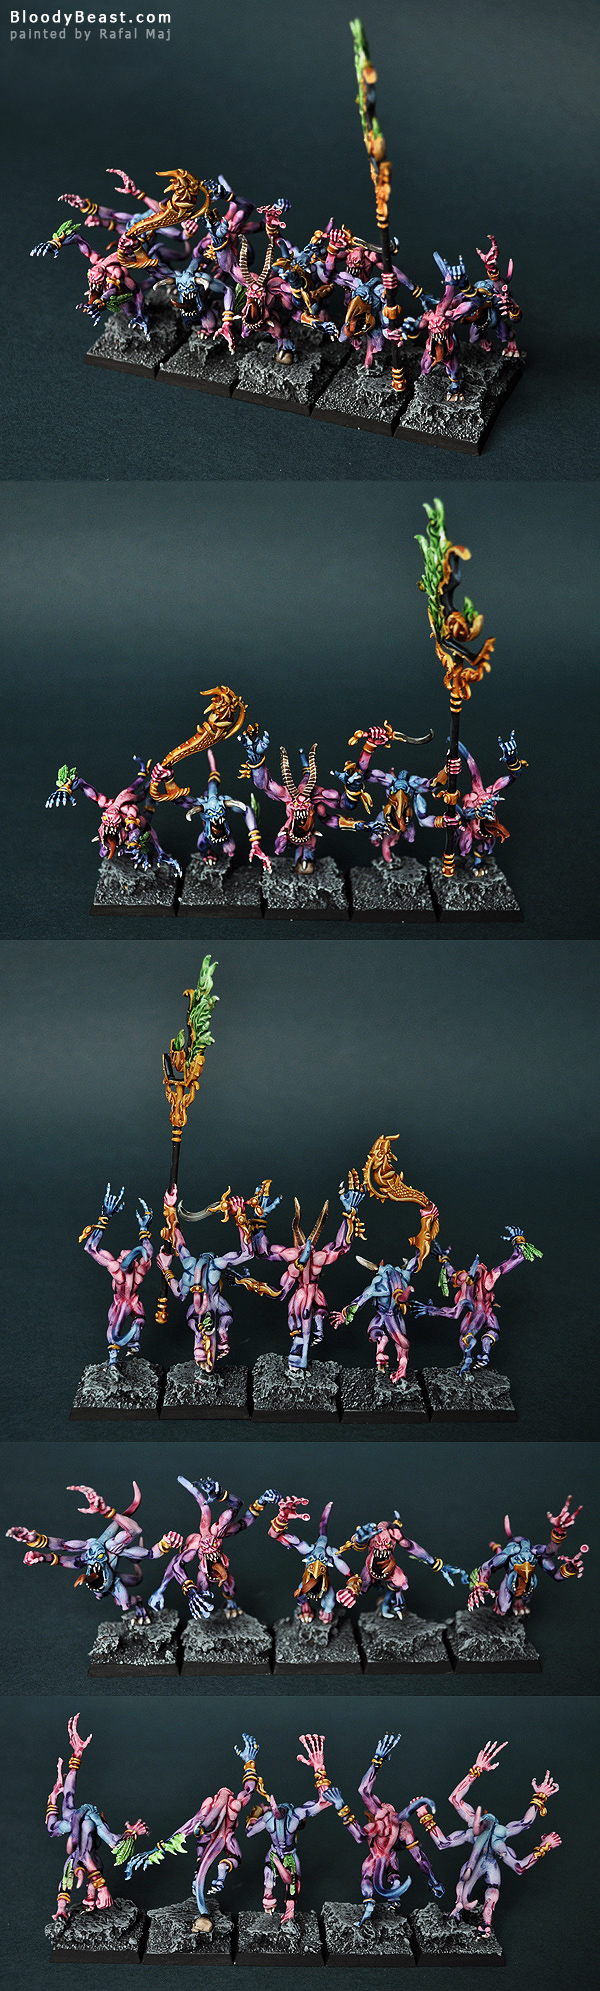 Pink Horrors of Tzeentch with Command painted by Rafal Maj (BloodyBeast.com)